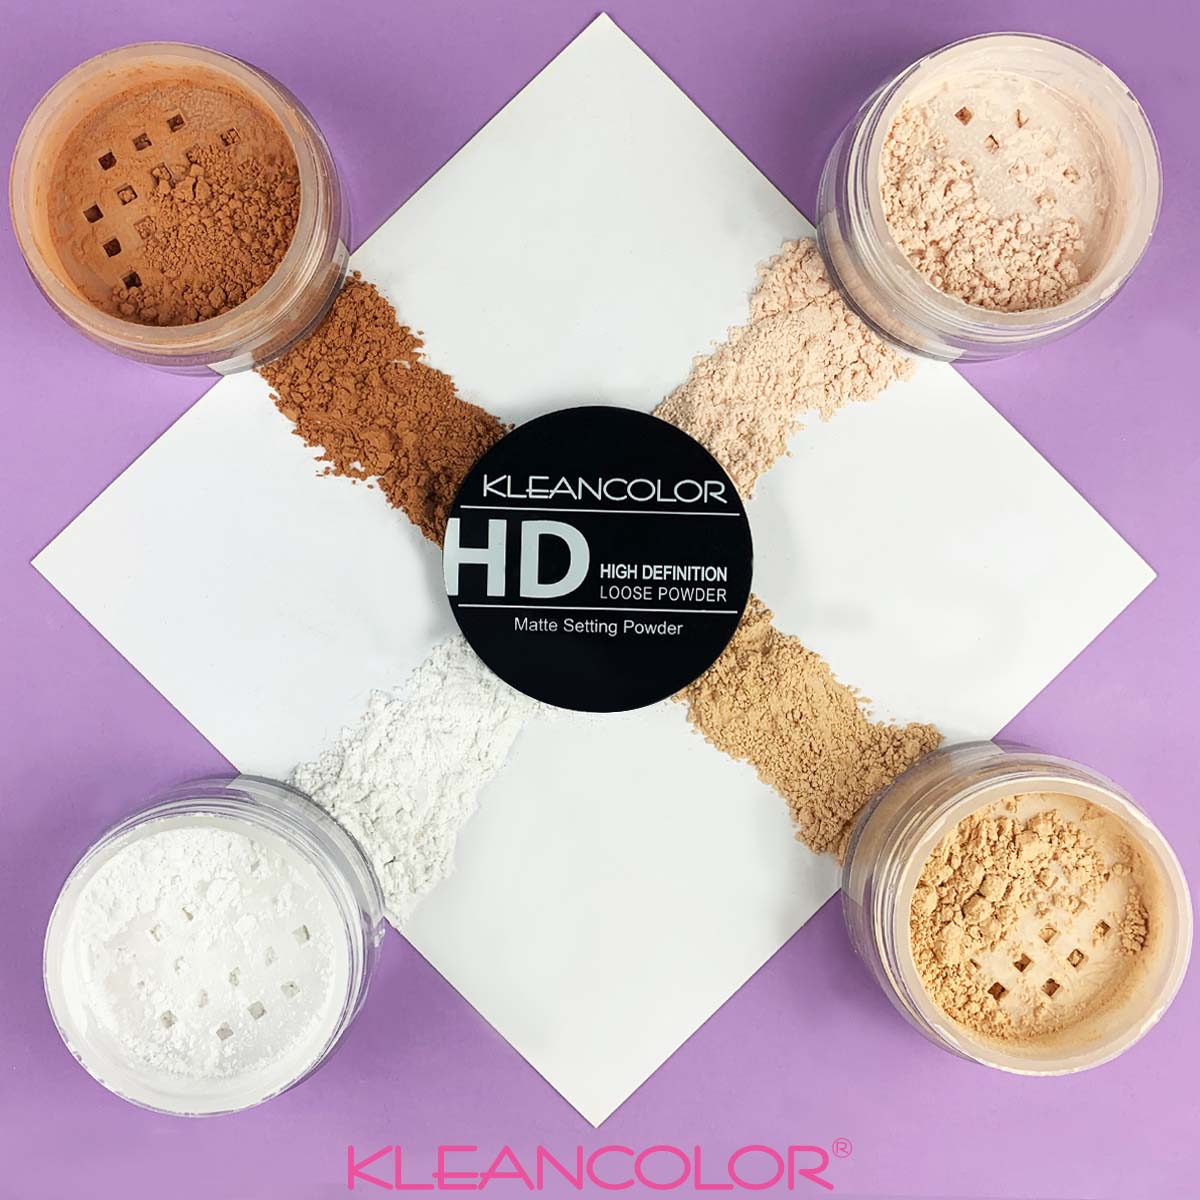 Our High Definition Matte Setting Loose Powders are an everyday essential for all your setting, baking, contouring and sculpting needs! Available in 4 shades for just $2.00 each! #KLEANCOLOR #SettingPowder #Powder #CrueltyFree #Makeup #Beauty #Cosmetics https://www.kleancolor.com/products/high-definition-mattifying-finishing-loose-powder?variant=53052343172 …pic.twitter.com/NzZ7LrBFBc